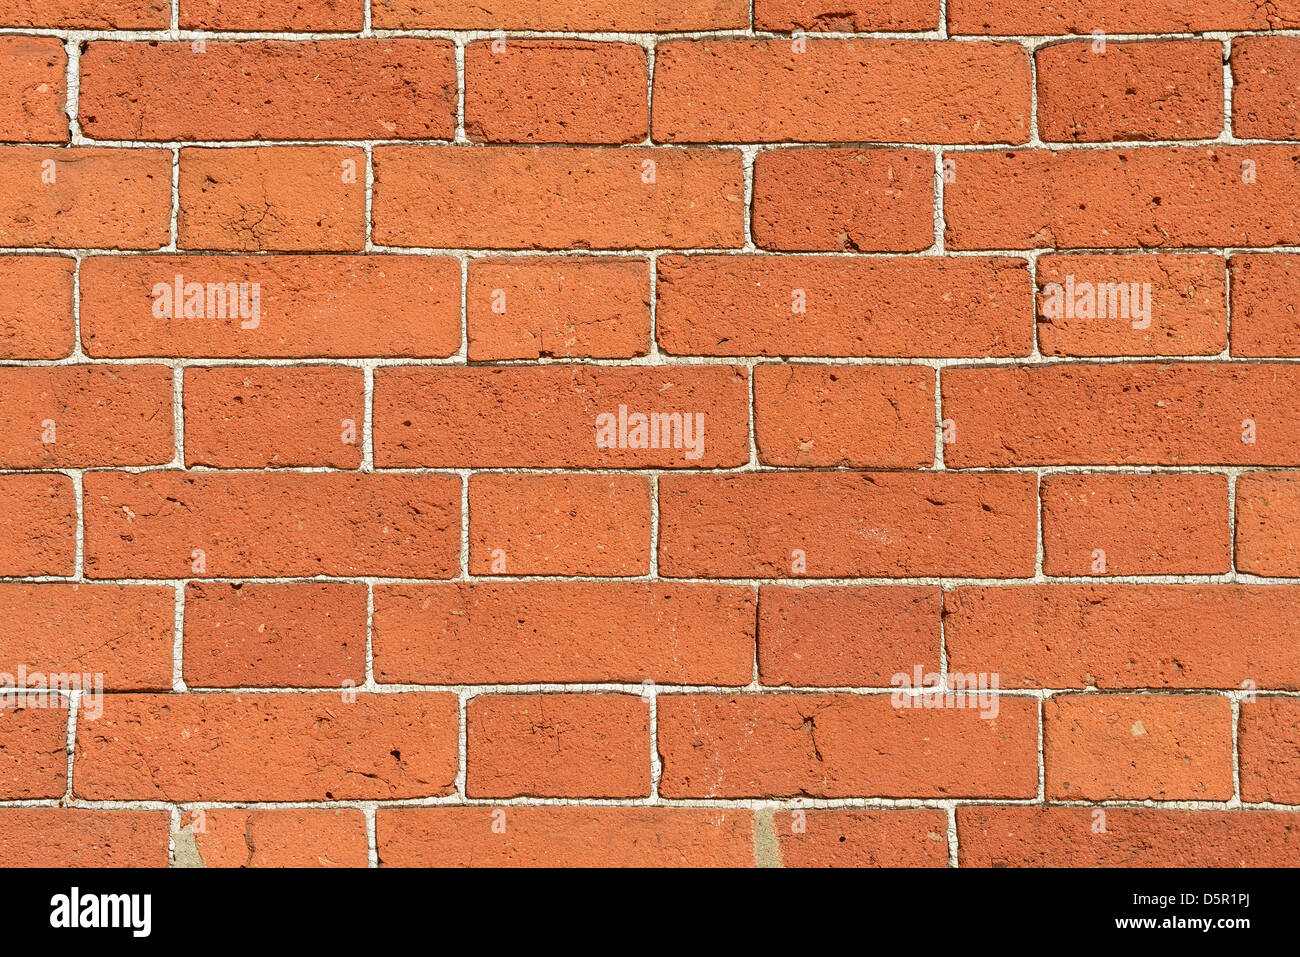 Detail of a brick wall with very fine mortar lines - Stock Image